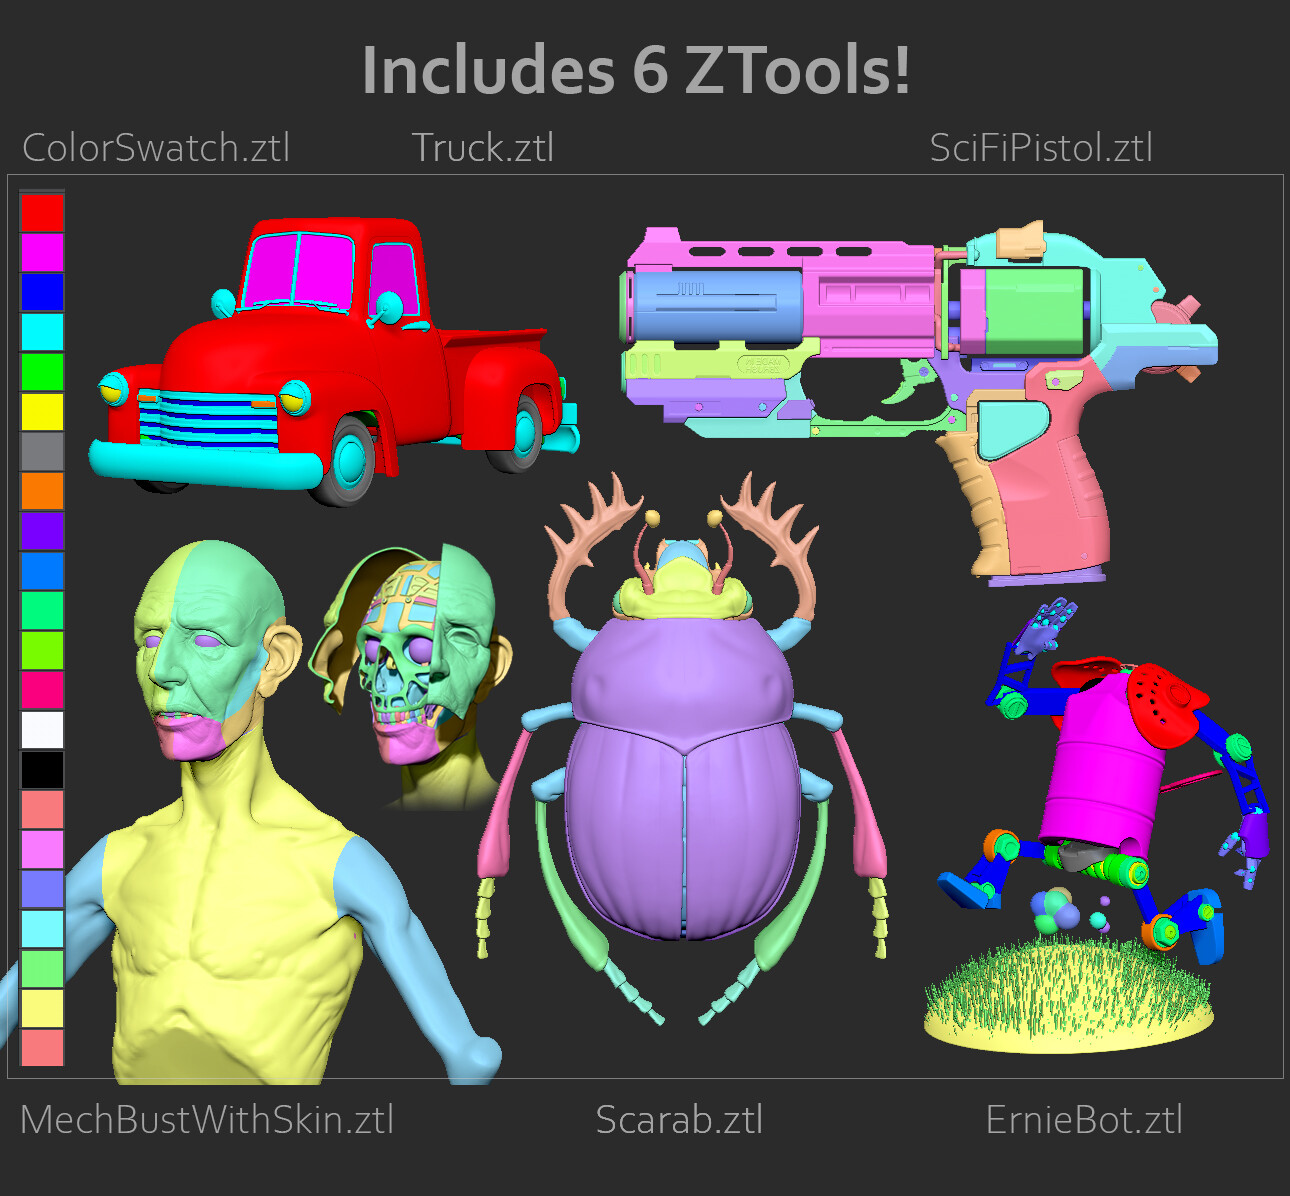 These ZTL's are included in the marketplace downloads, along with an extra 90 minutes of demos!